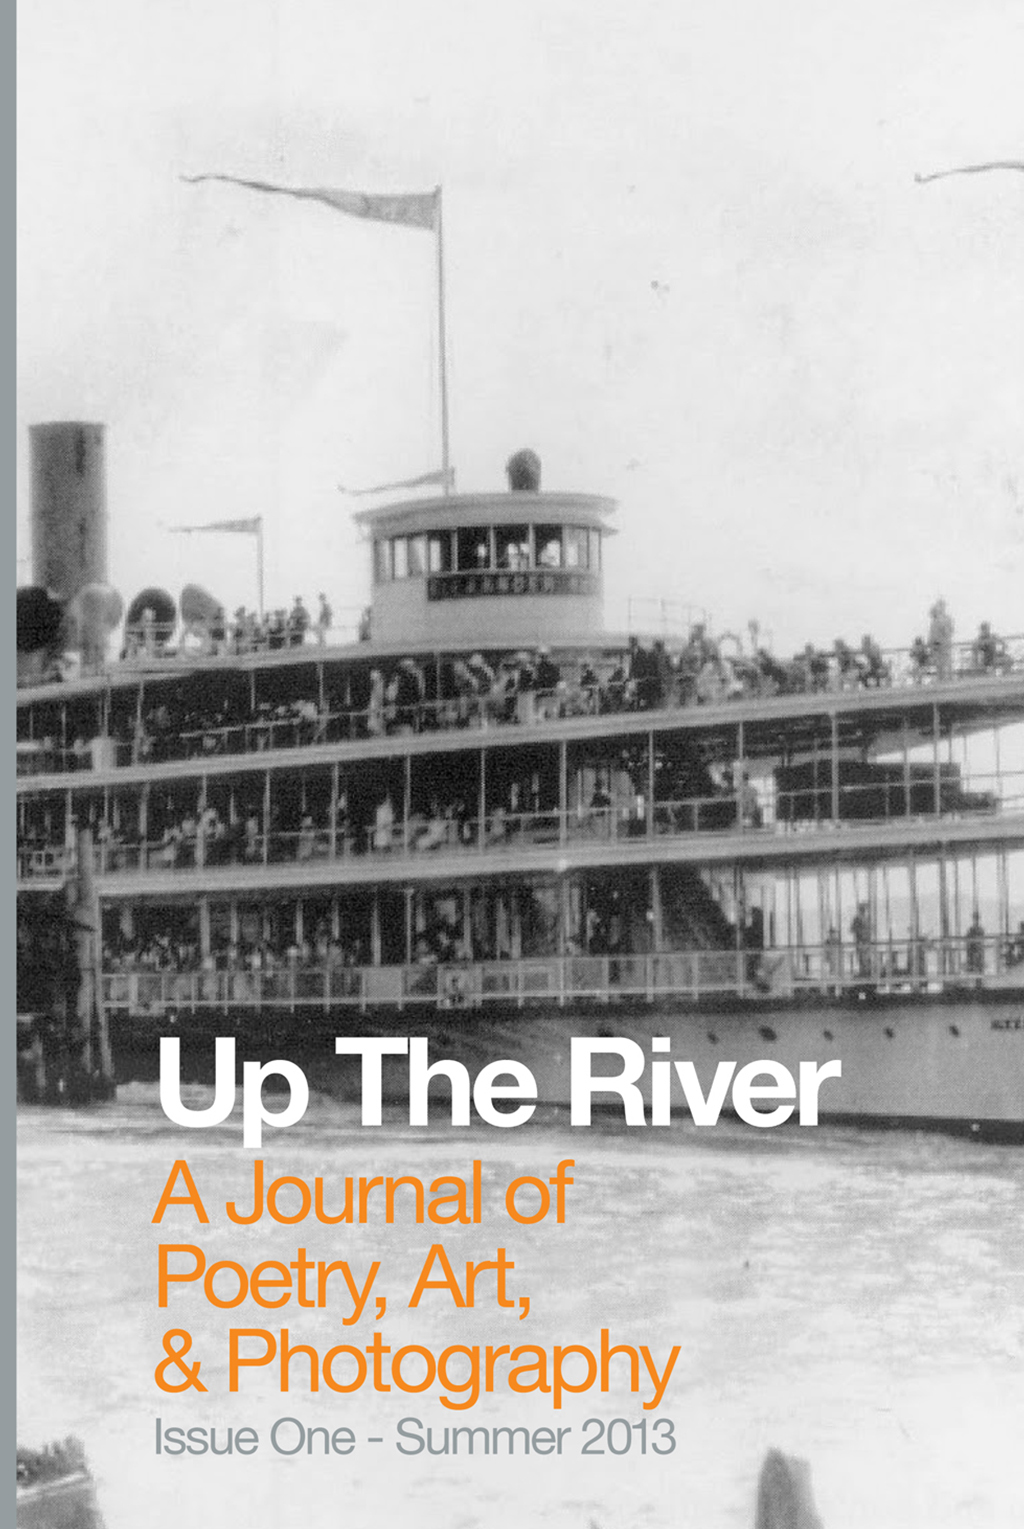 Up The River, Issue One